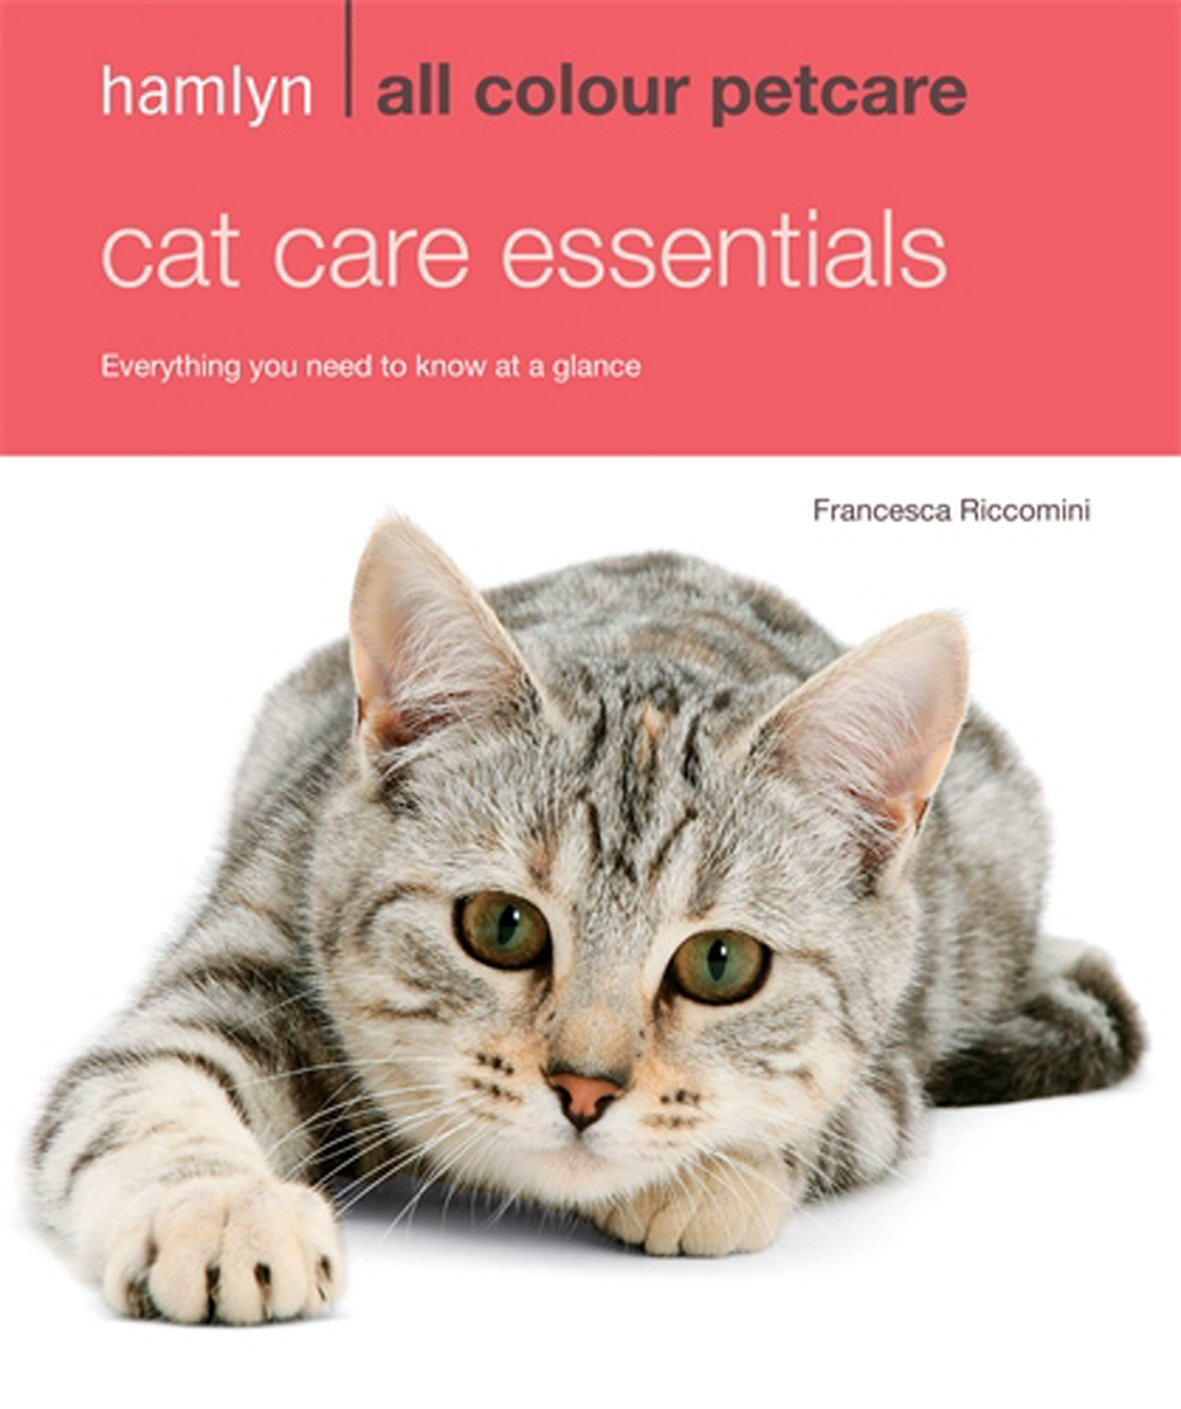 Hamlyn All Colour Petcare: Cat Care Essentials: Everything You Need to Know at a Glance